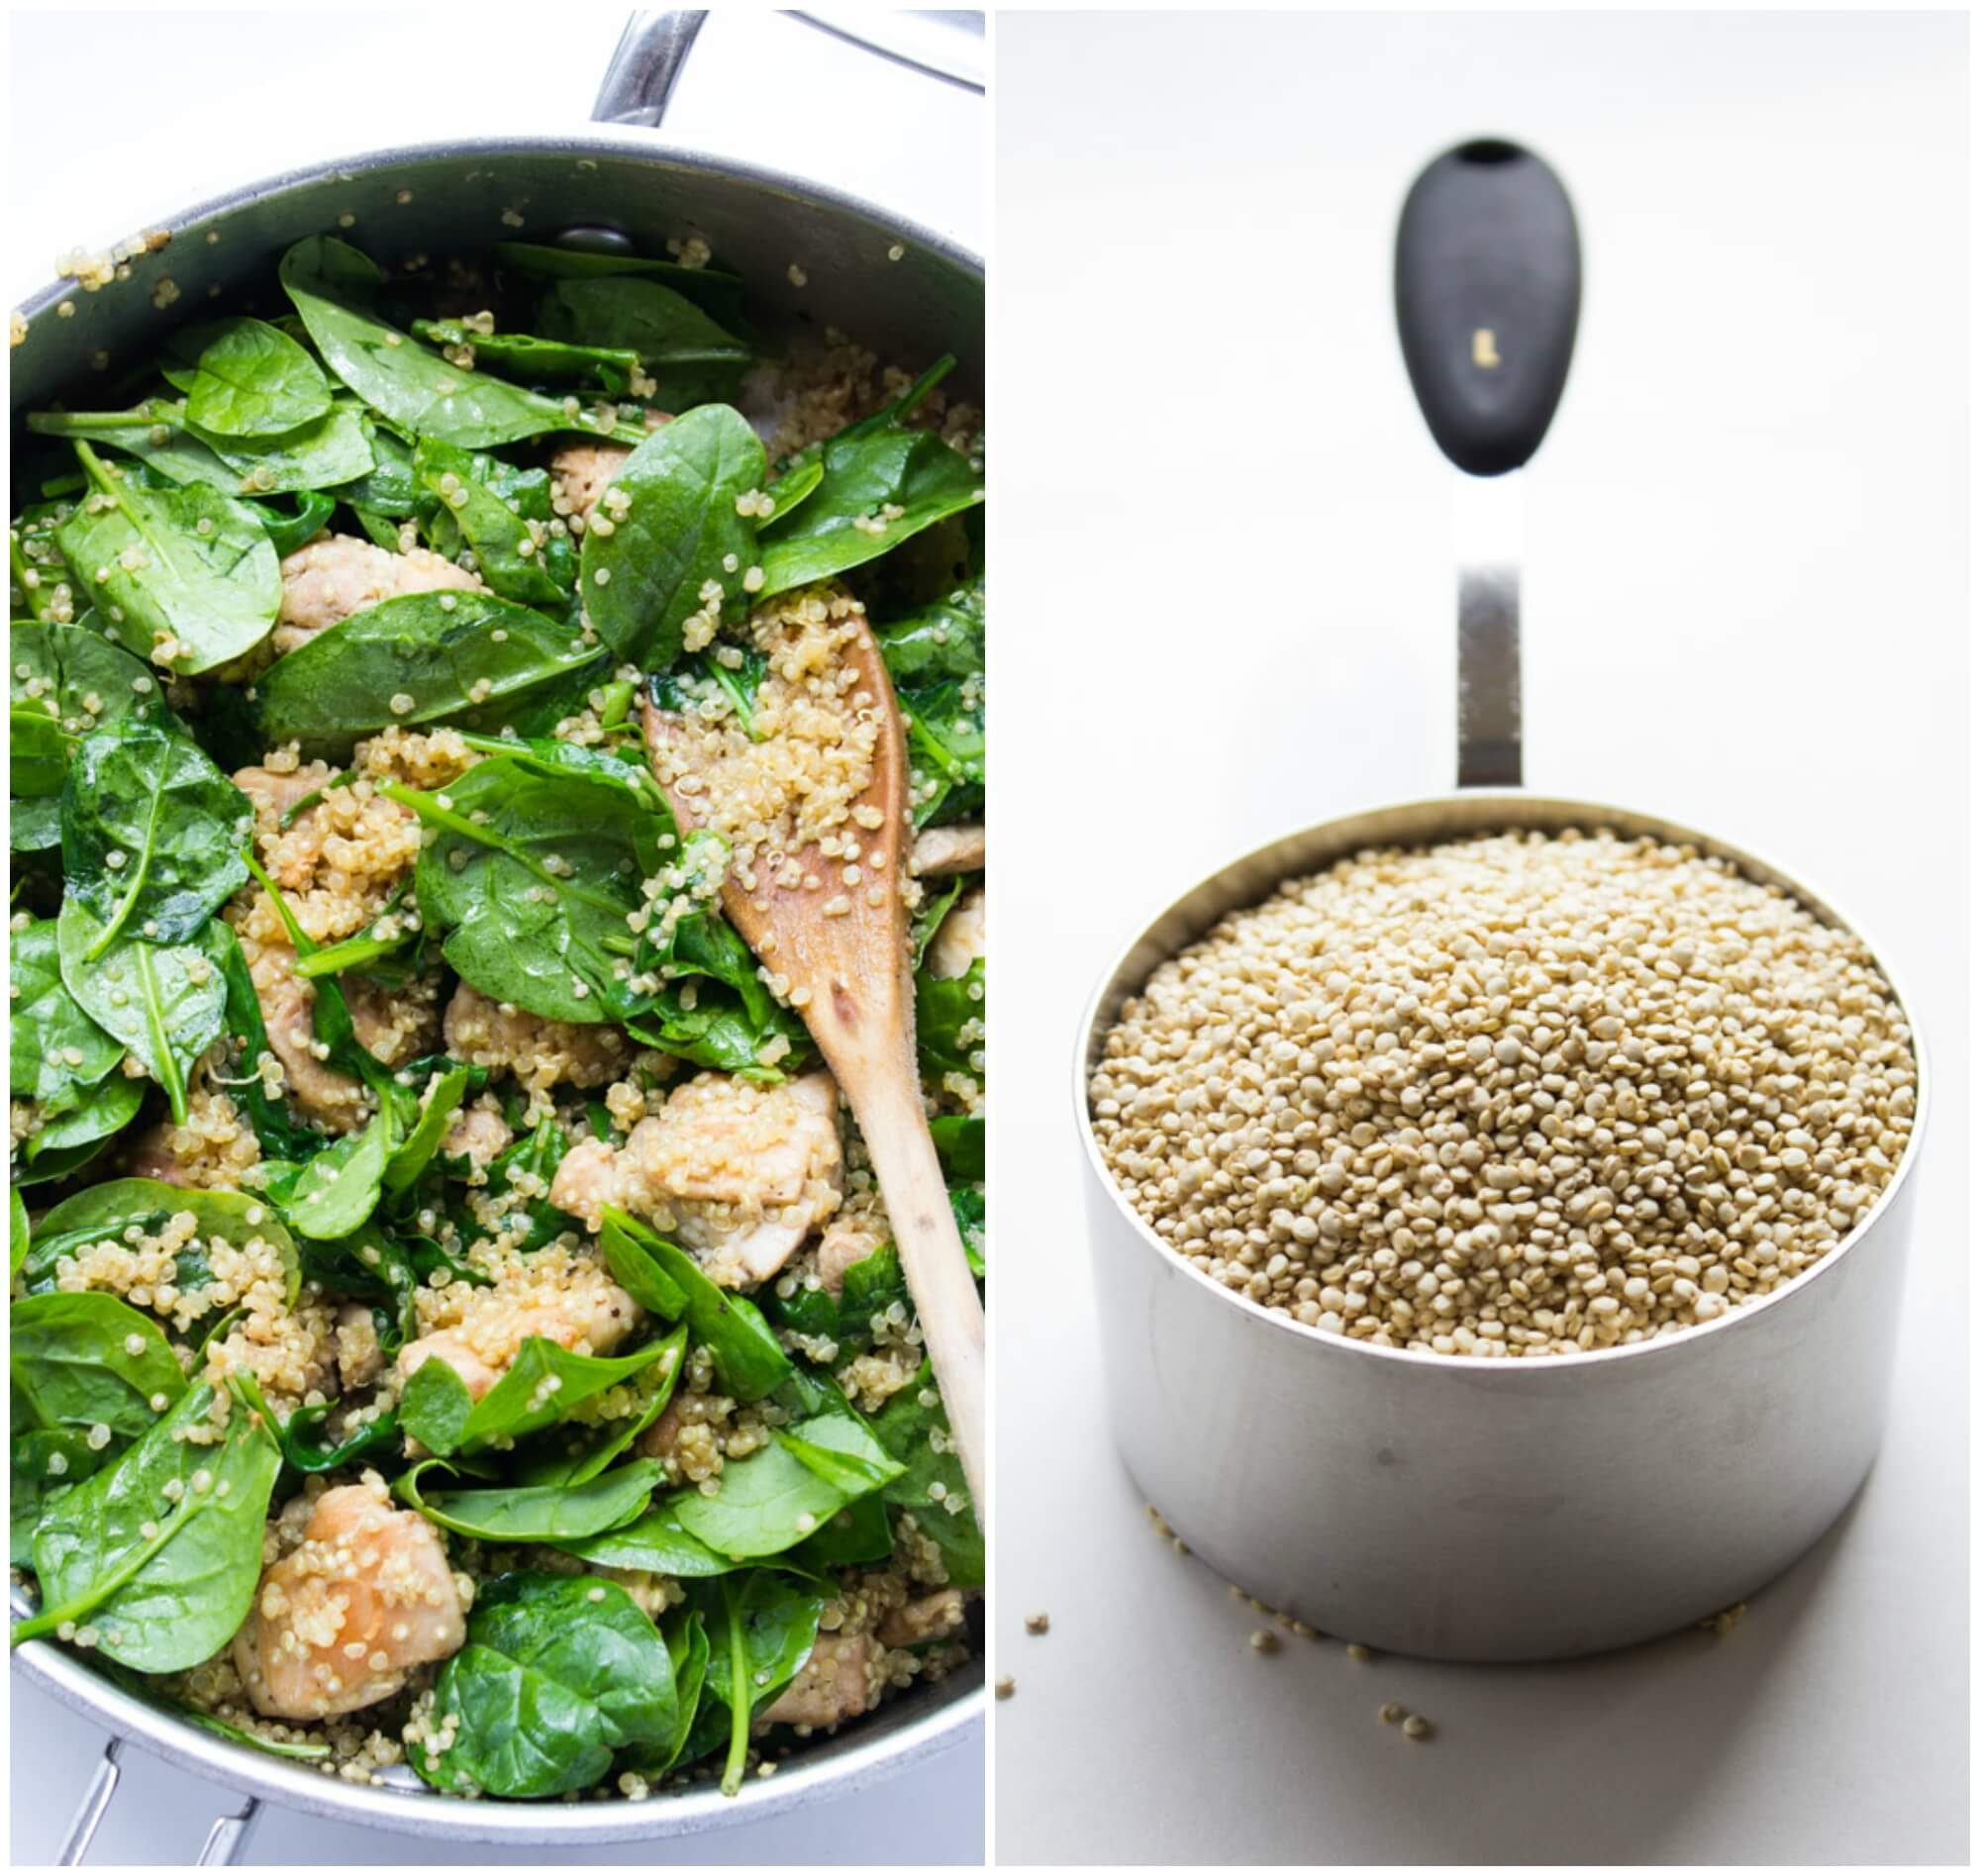 Healthy one-pot Chicken and Quinoa dinner, with baby spinach and mushrooms in a tangy sweet mustard sauce | littlebroken.com @littlebroken